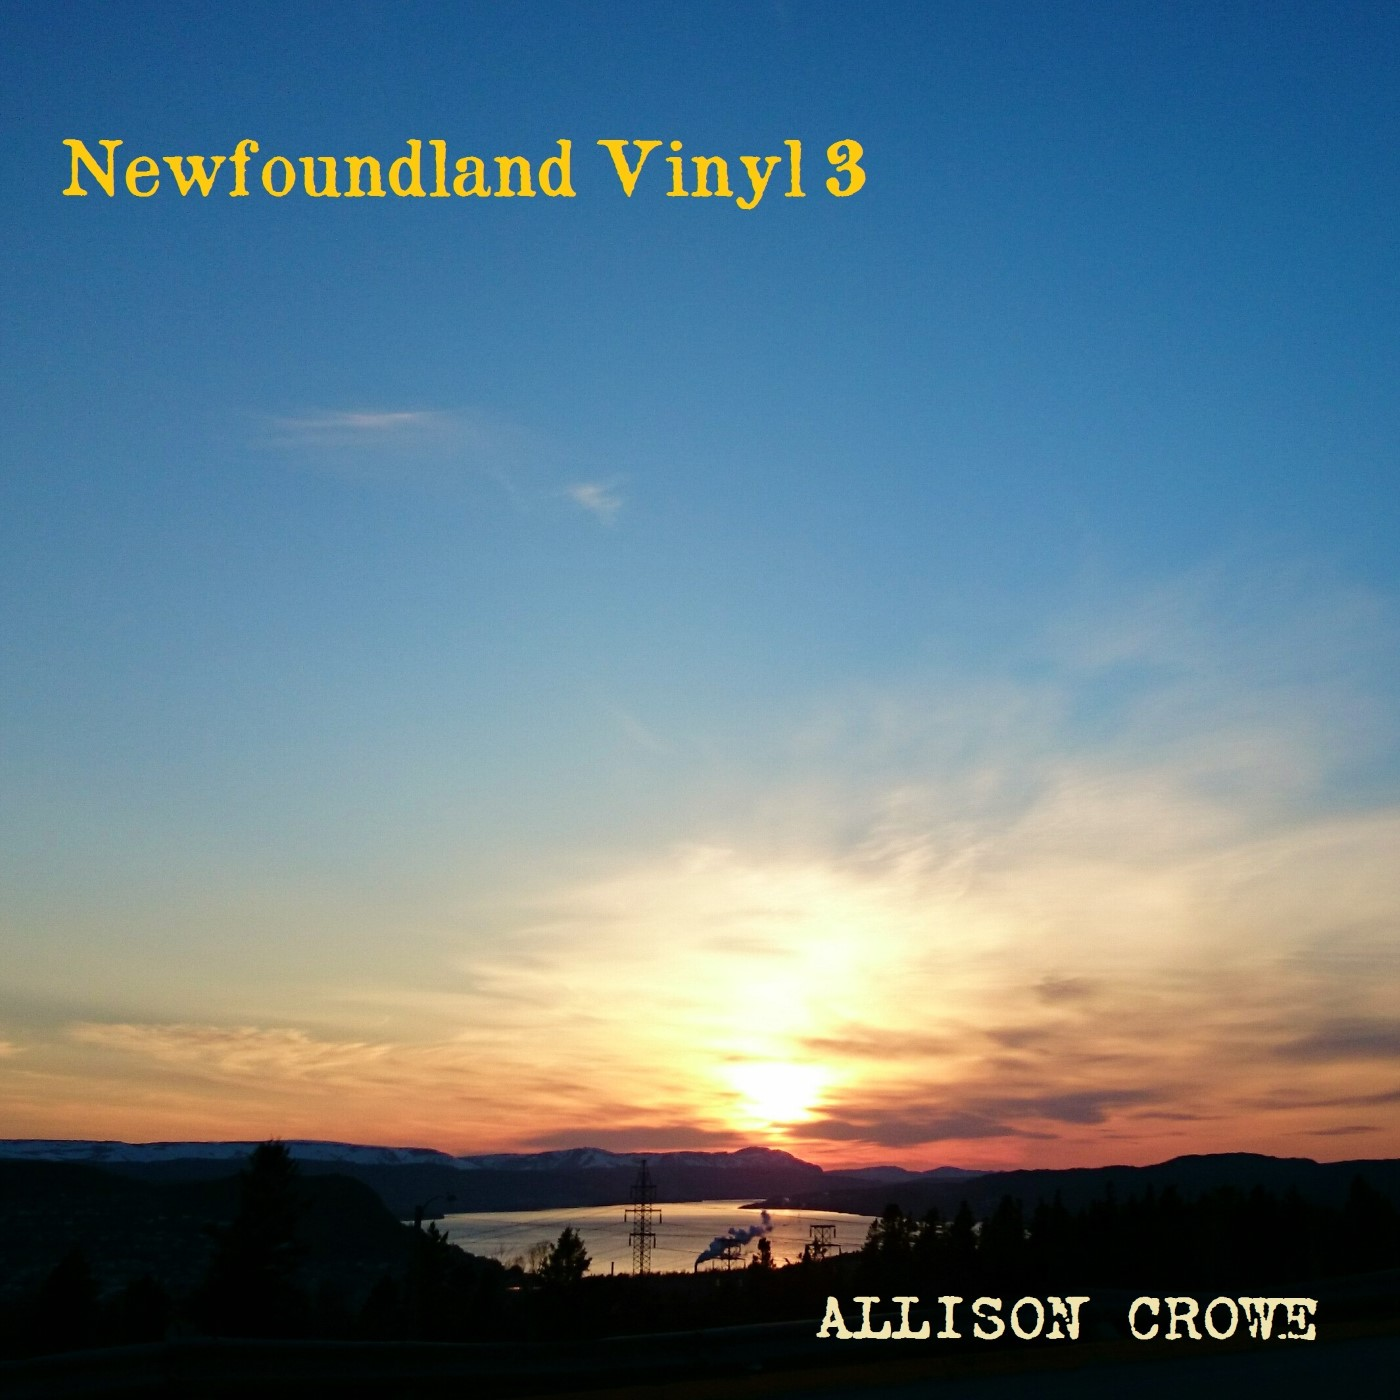 Newfoundland Vinyl 3 - Allison Crowe - album cover